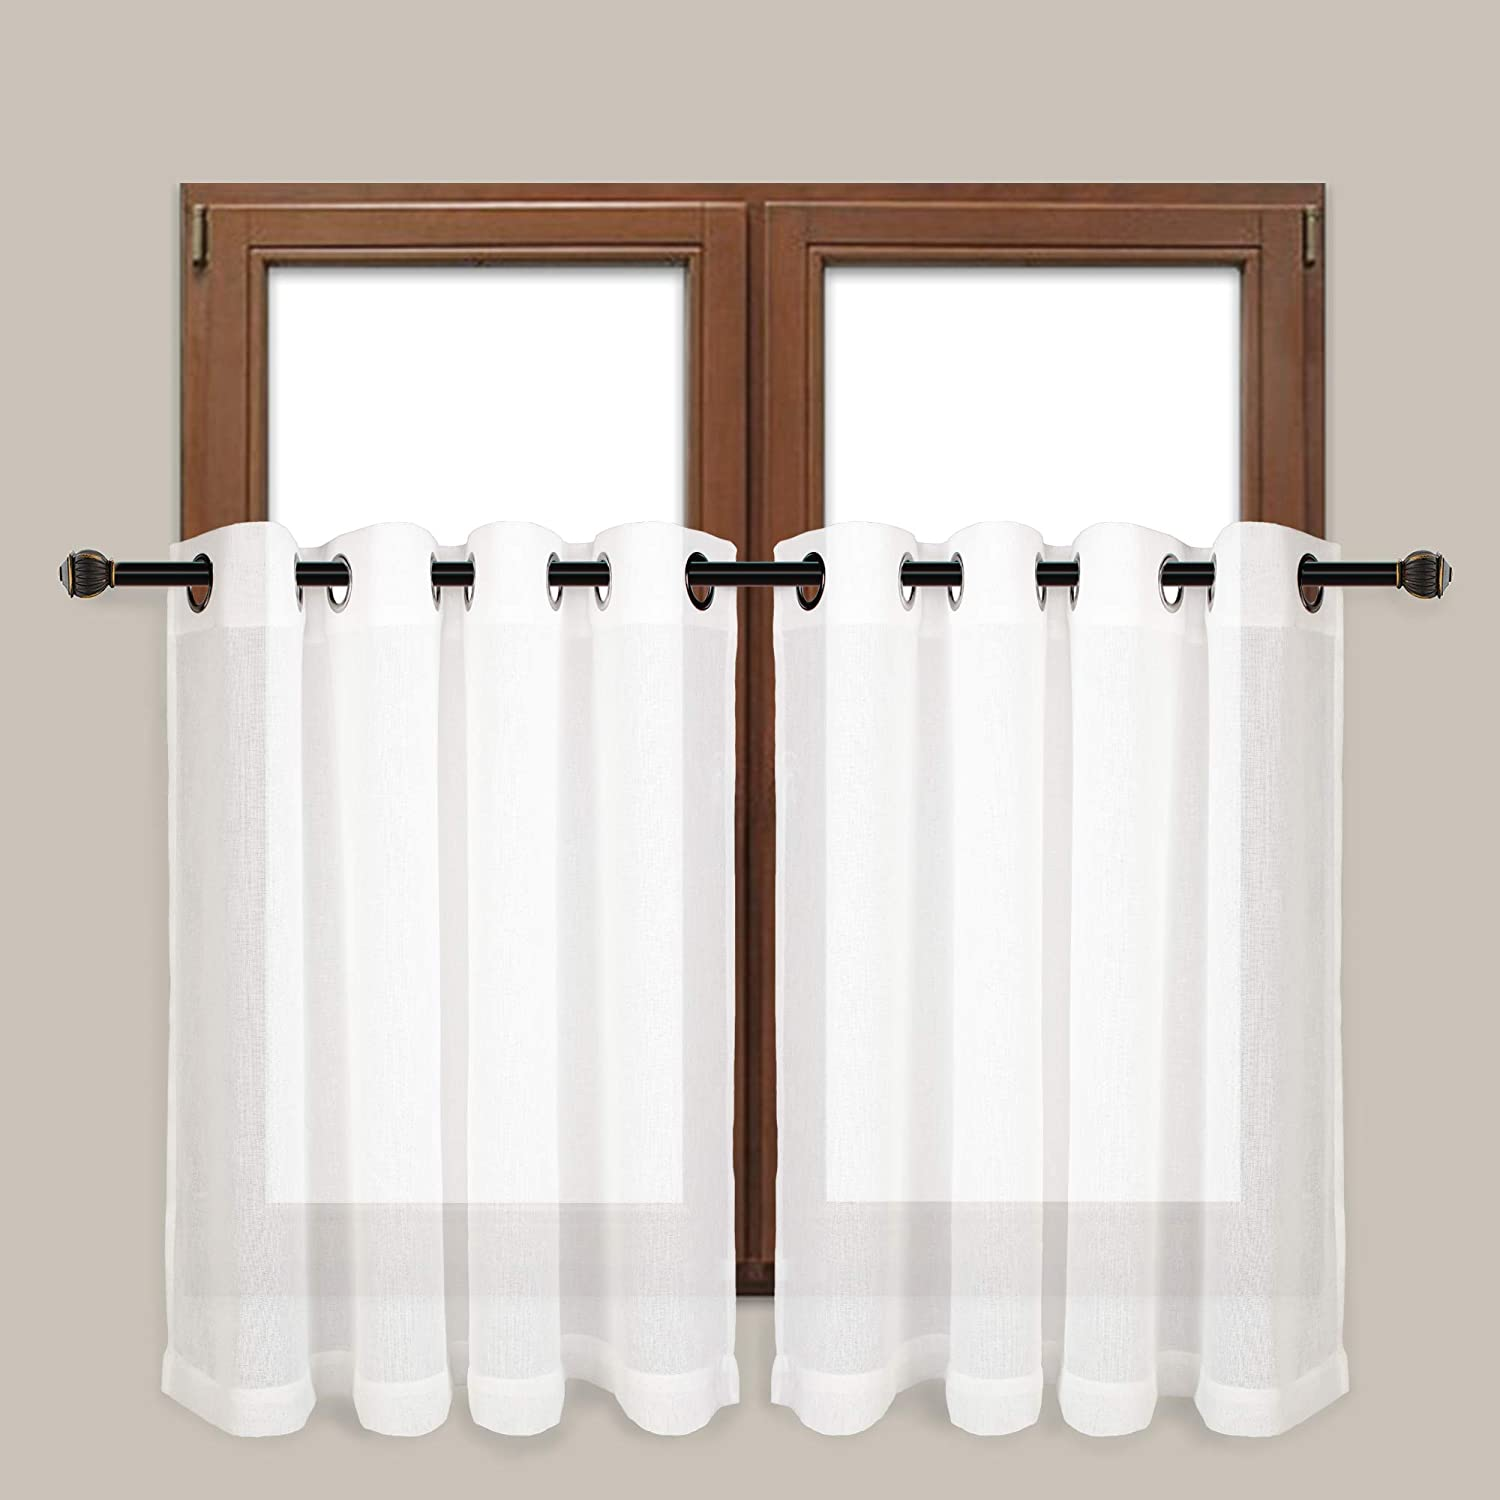 VOILYBIRD Vitoria Sheer Curtains Window Tiers - 54-inch by 36-inch Grommet Top for Kitchen Window/Bathroom, White, 2 Panels